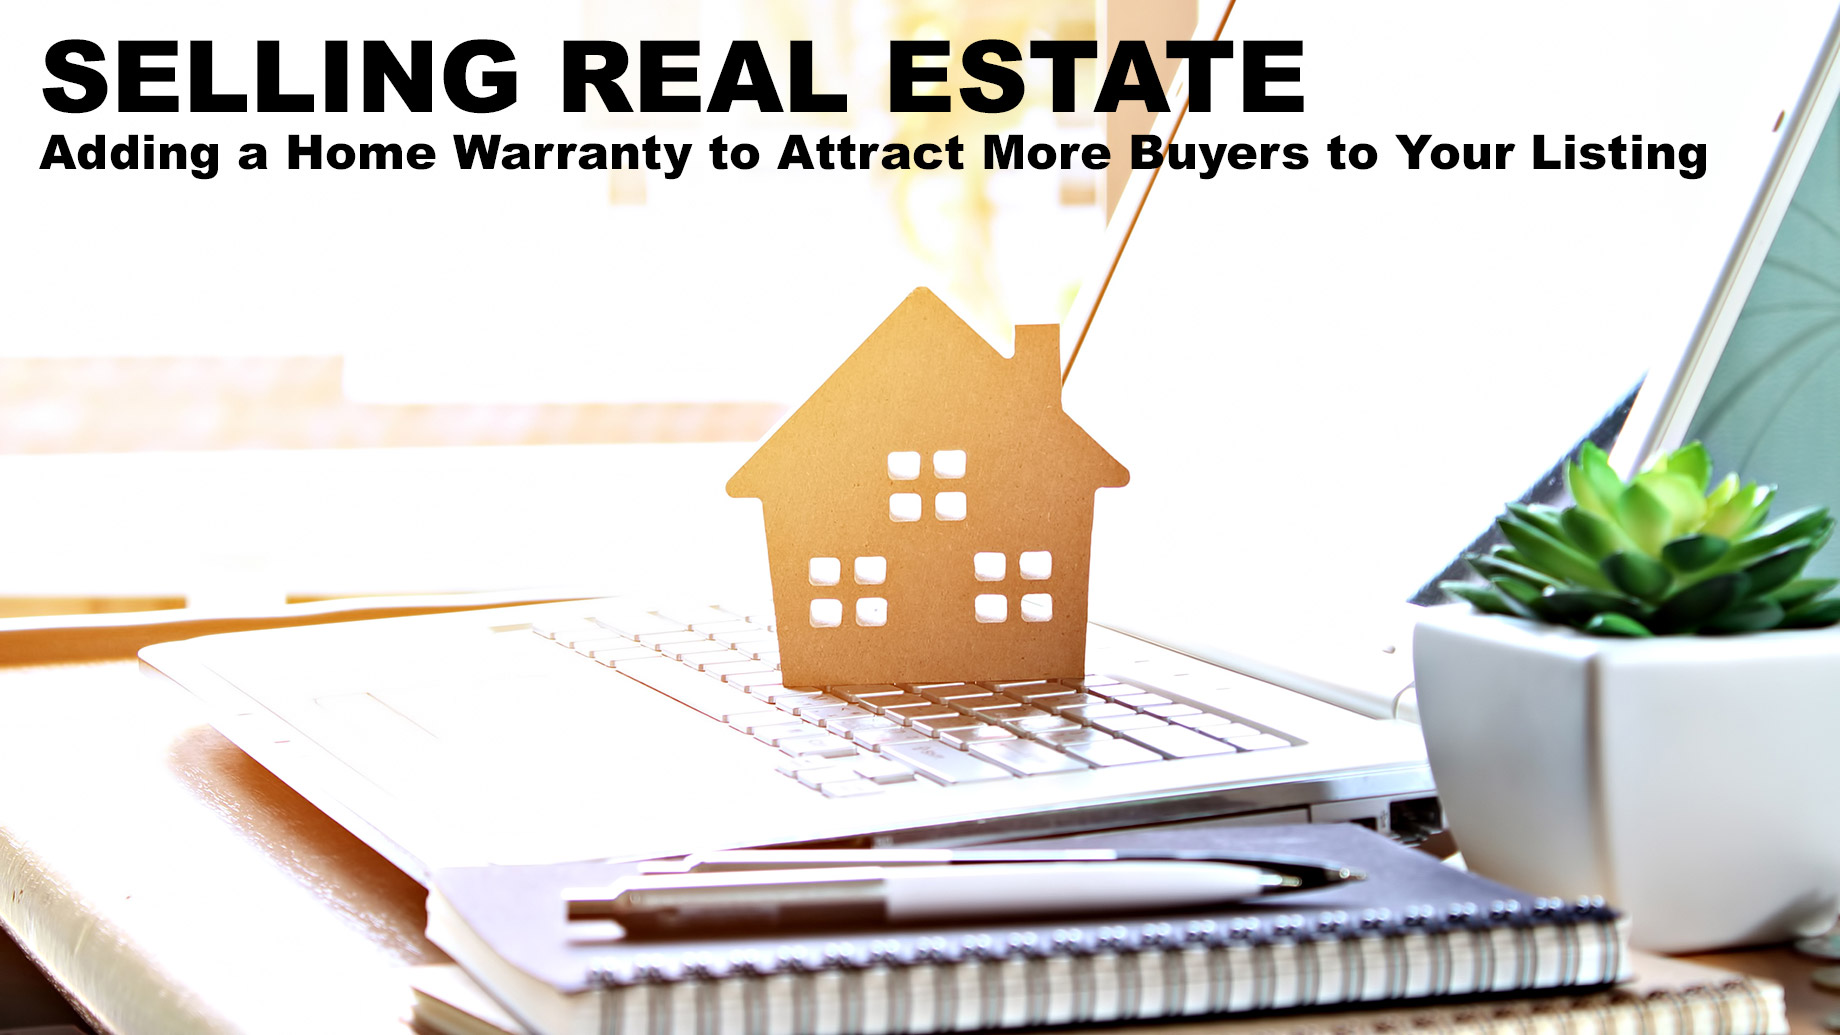 Selling Real Estate - Adding a Home Warranty to Attract More Buyers to Your Listing